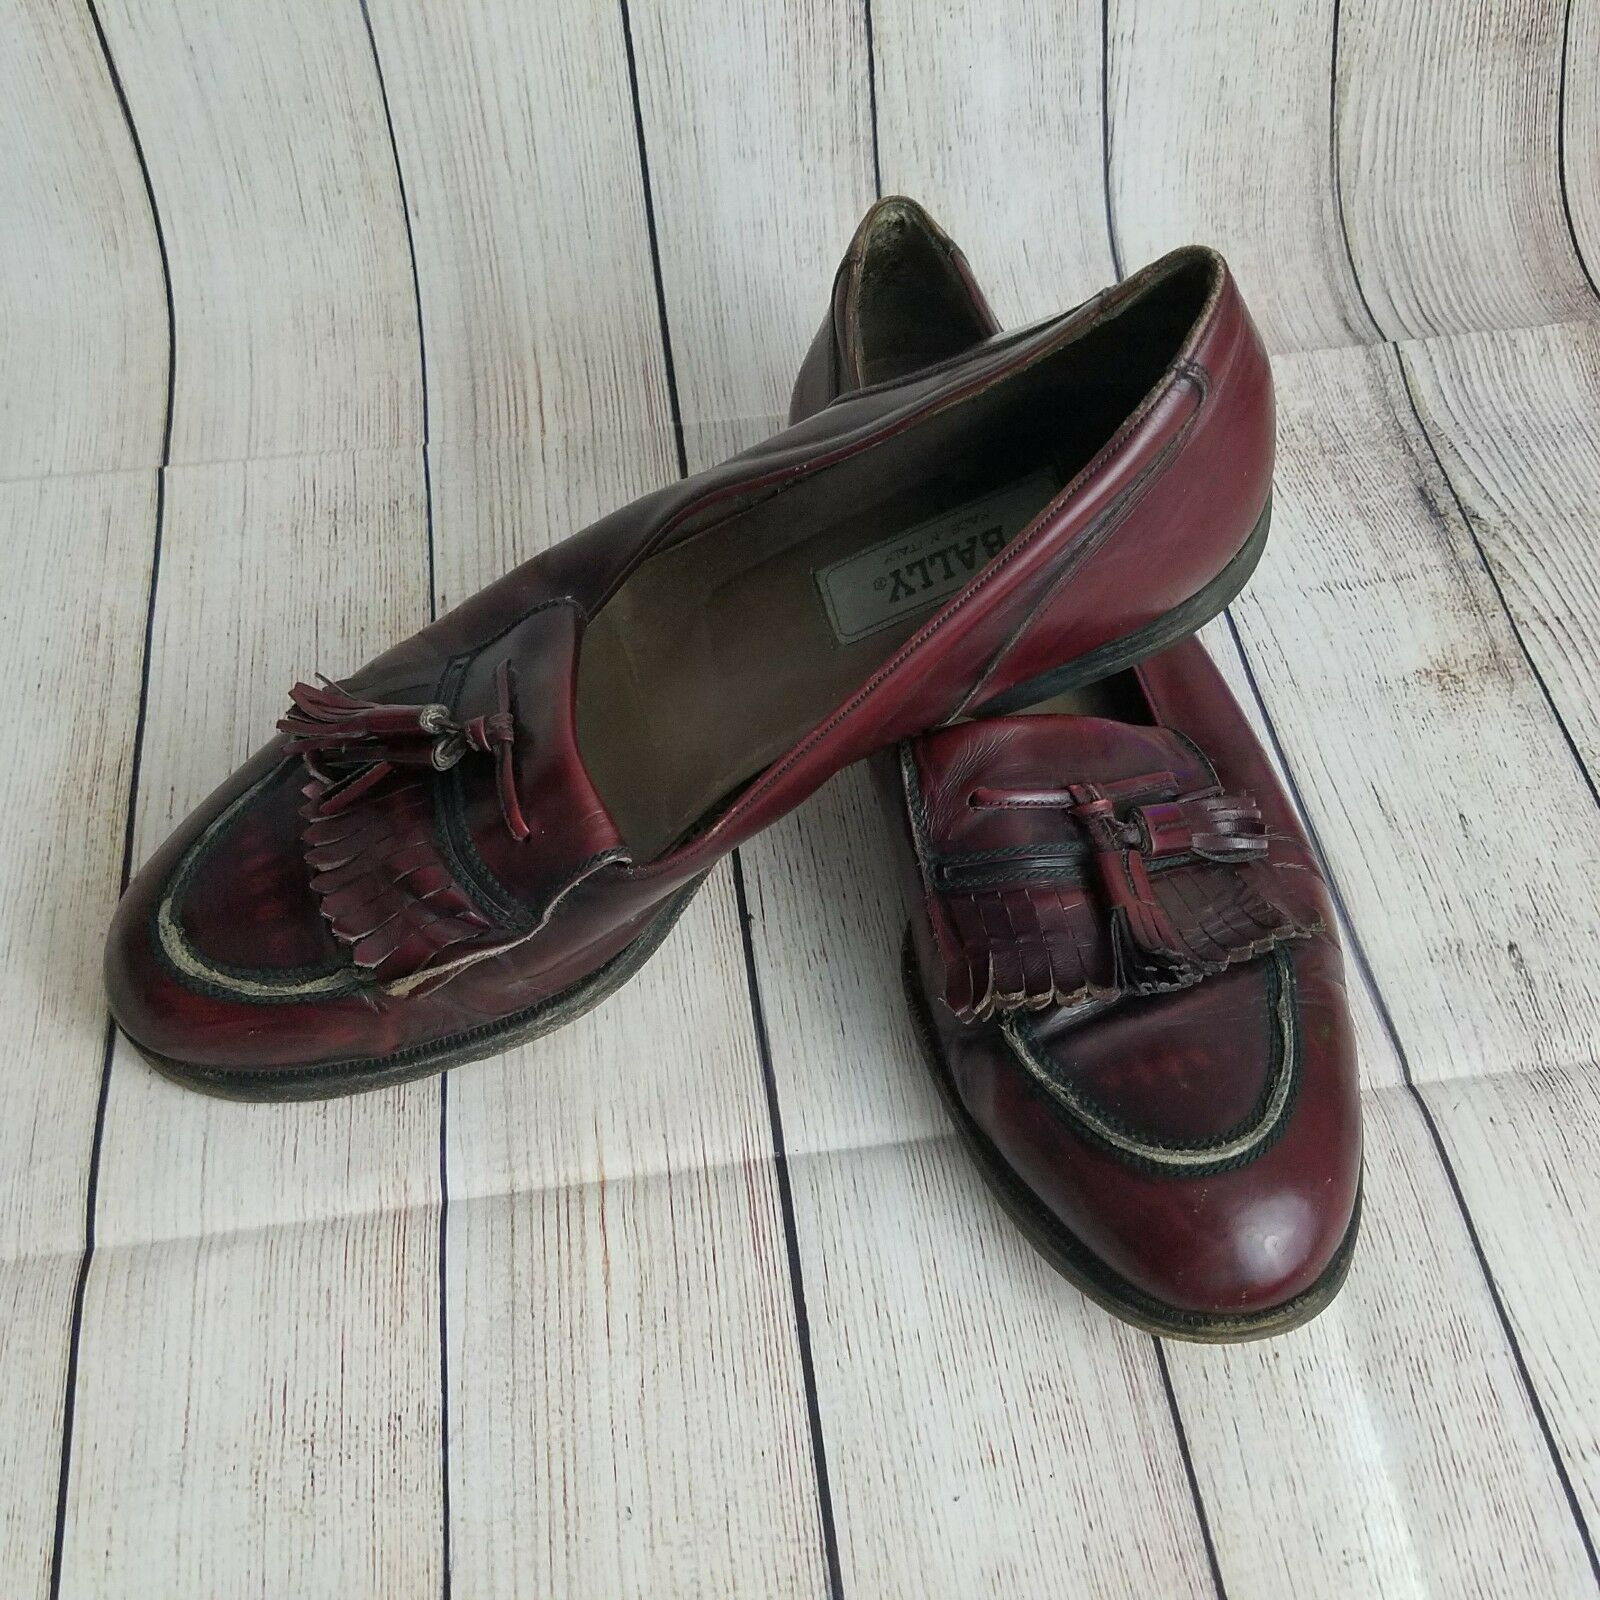 BALLY Men's Loafers Burgundy Leather Tassel Size 11.5 M shoes